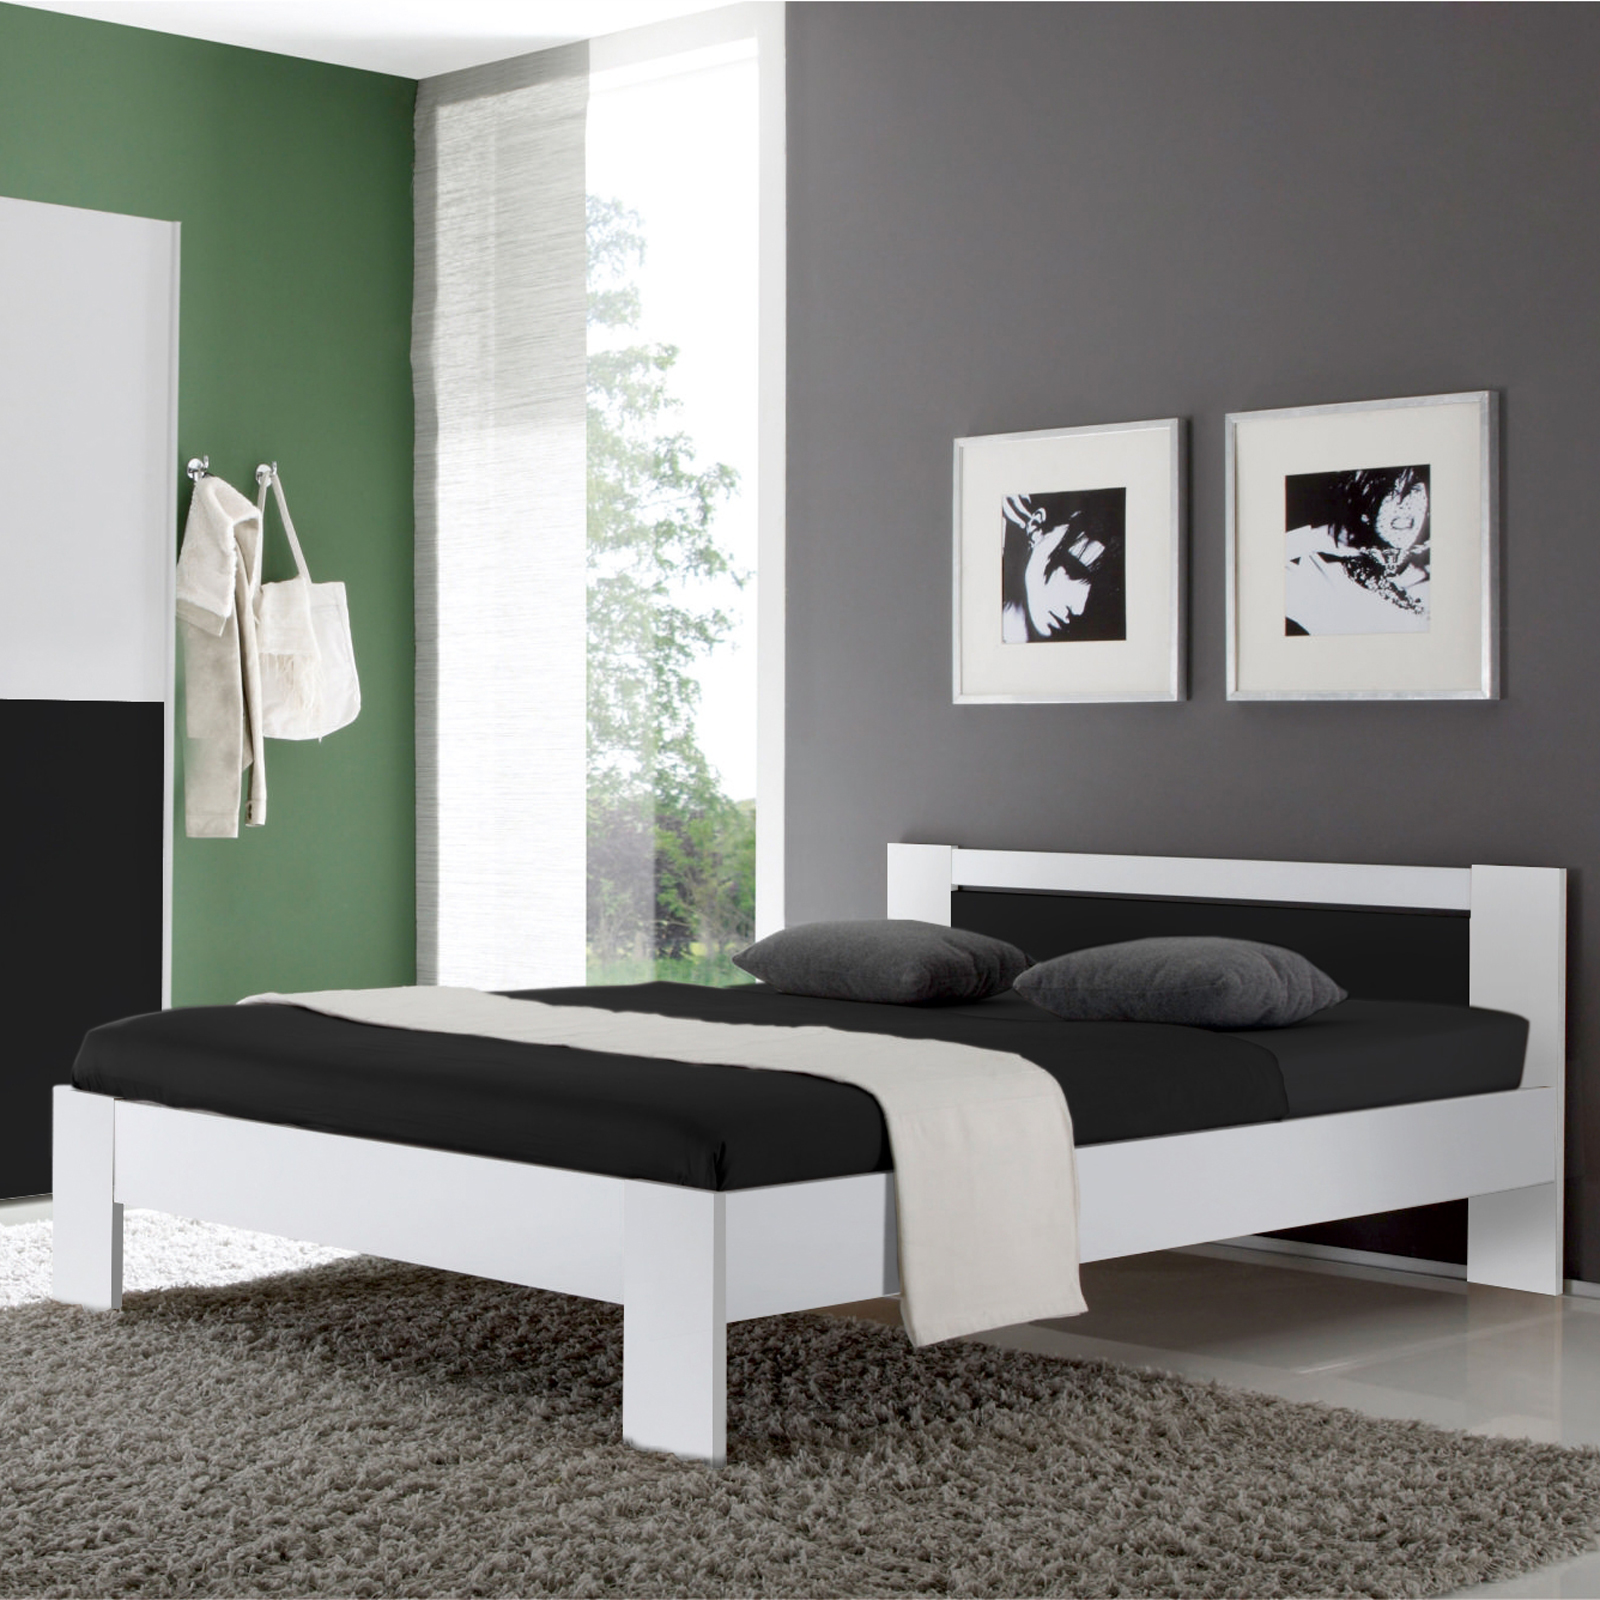 bett vega futonbett wei und schwarz inkl rollrost und matratze 120 cm ebay. Black Bedroom Furniture Sets. Home Design Ideas